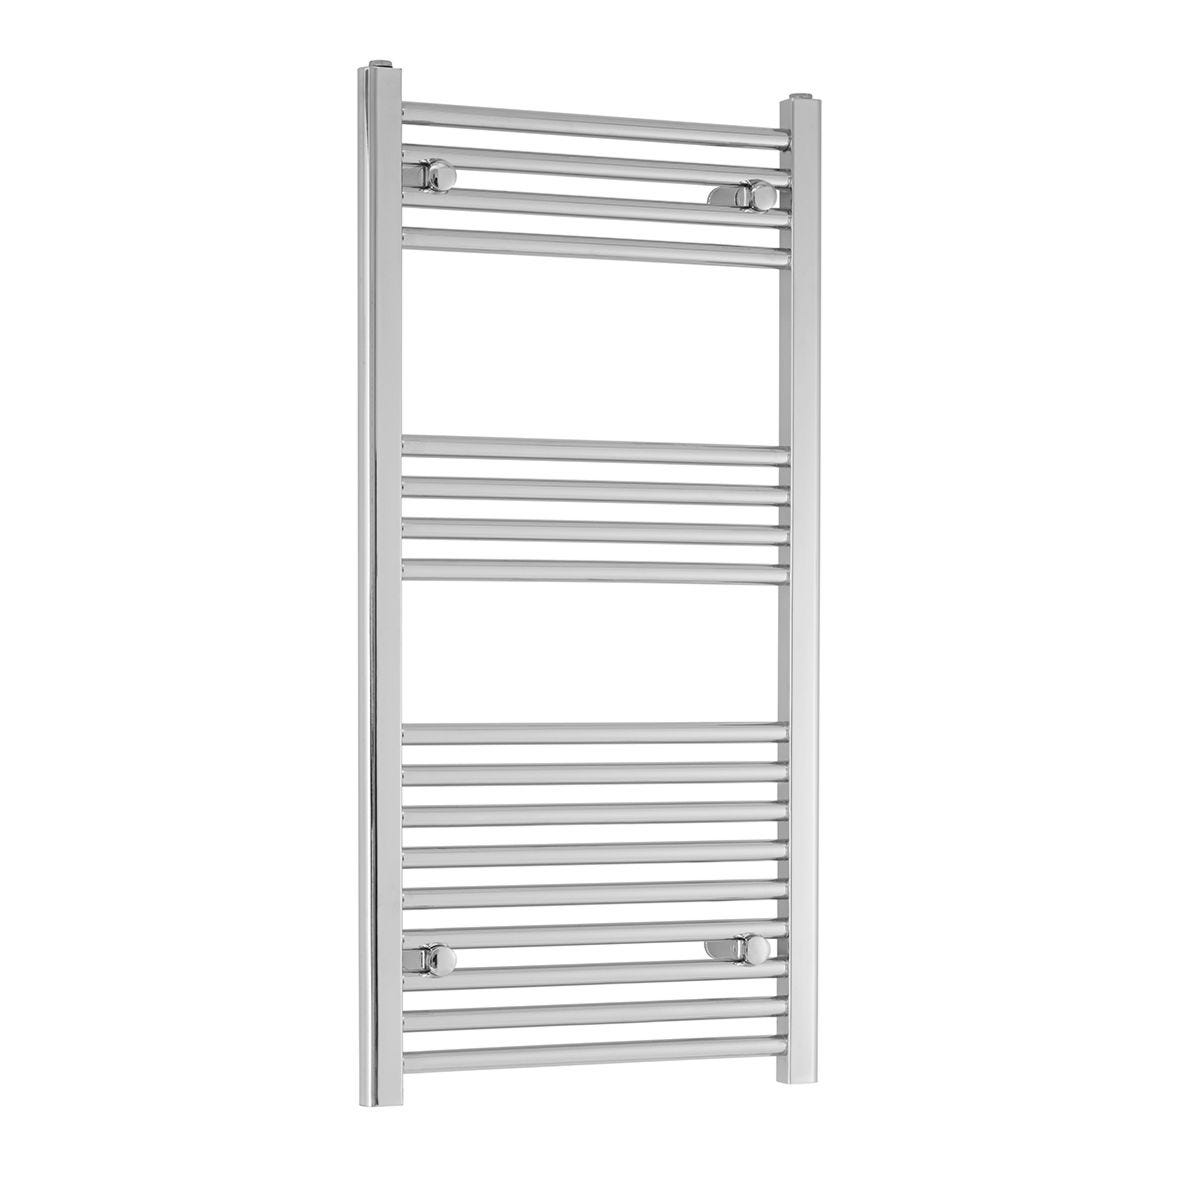 Heating Style Blythe Ladder Rail 1800x400mm Straight - Chrome